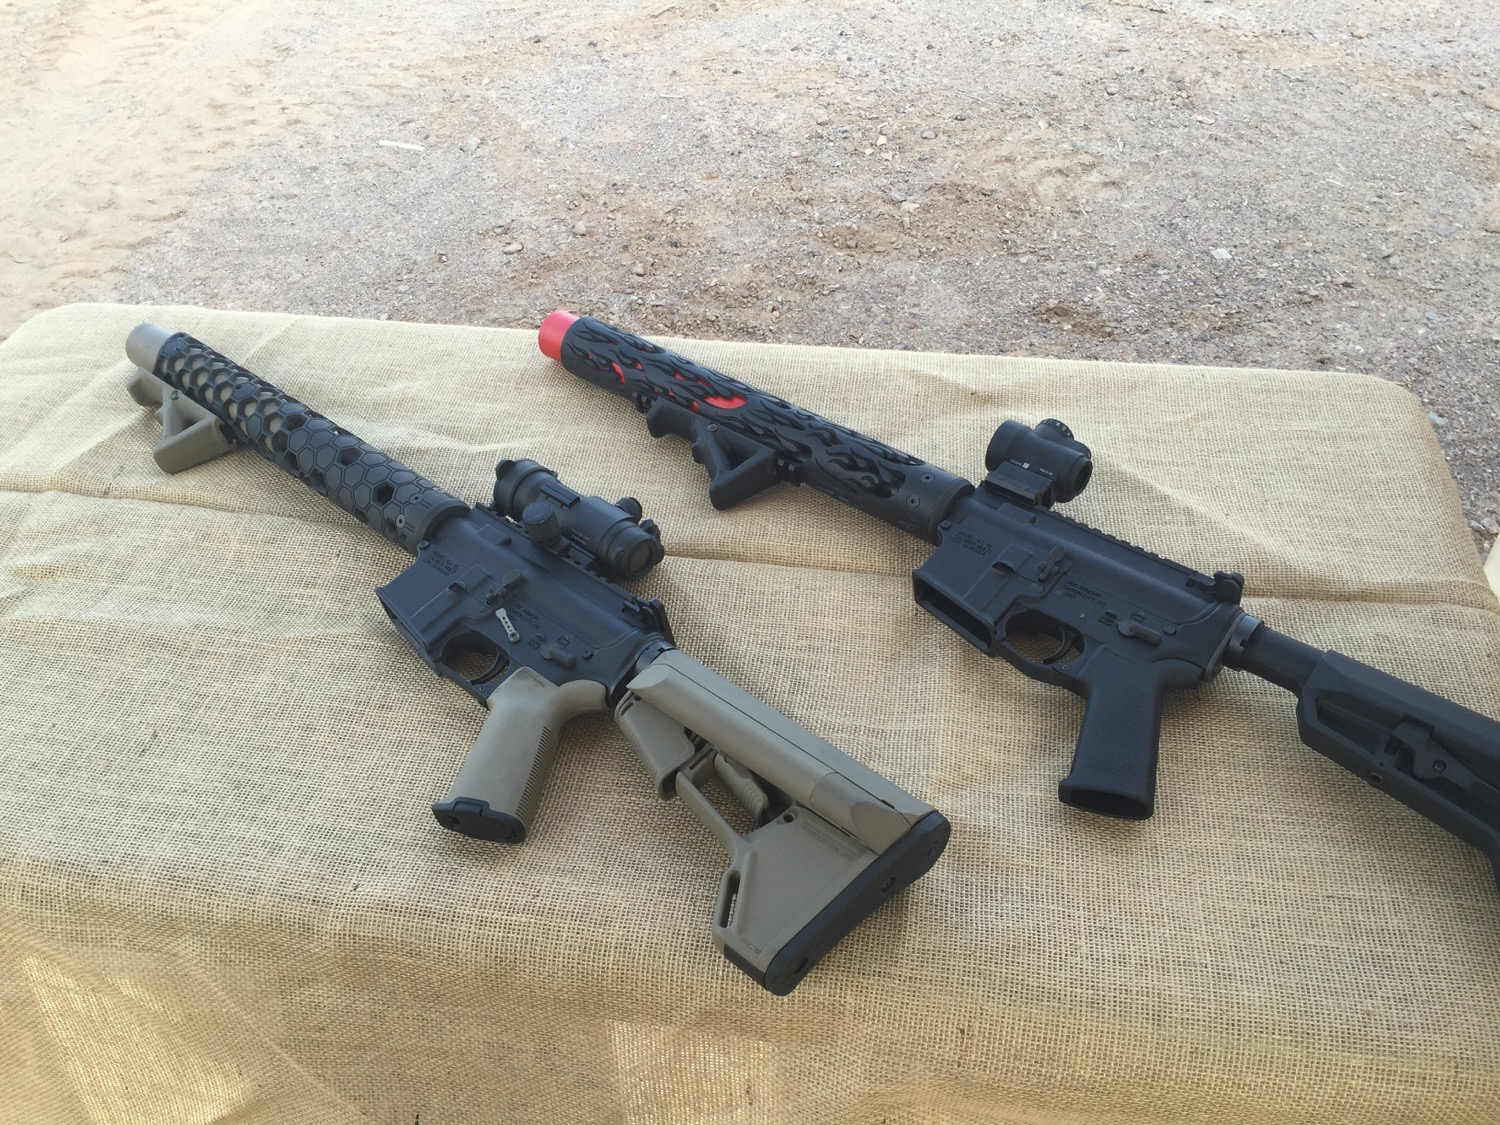 Integrally suppressed .300 Blackout AR